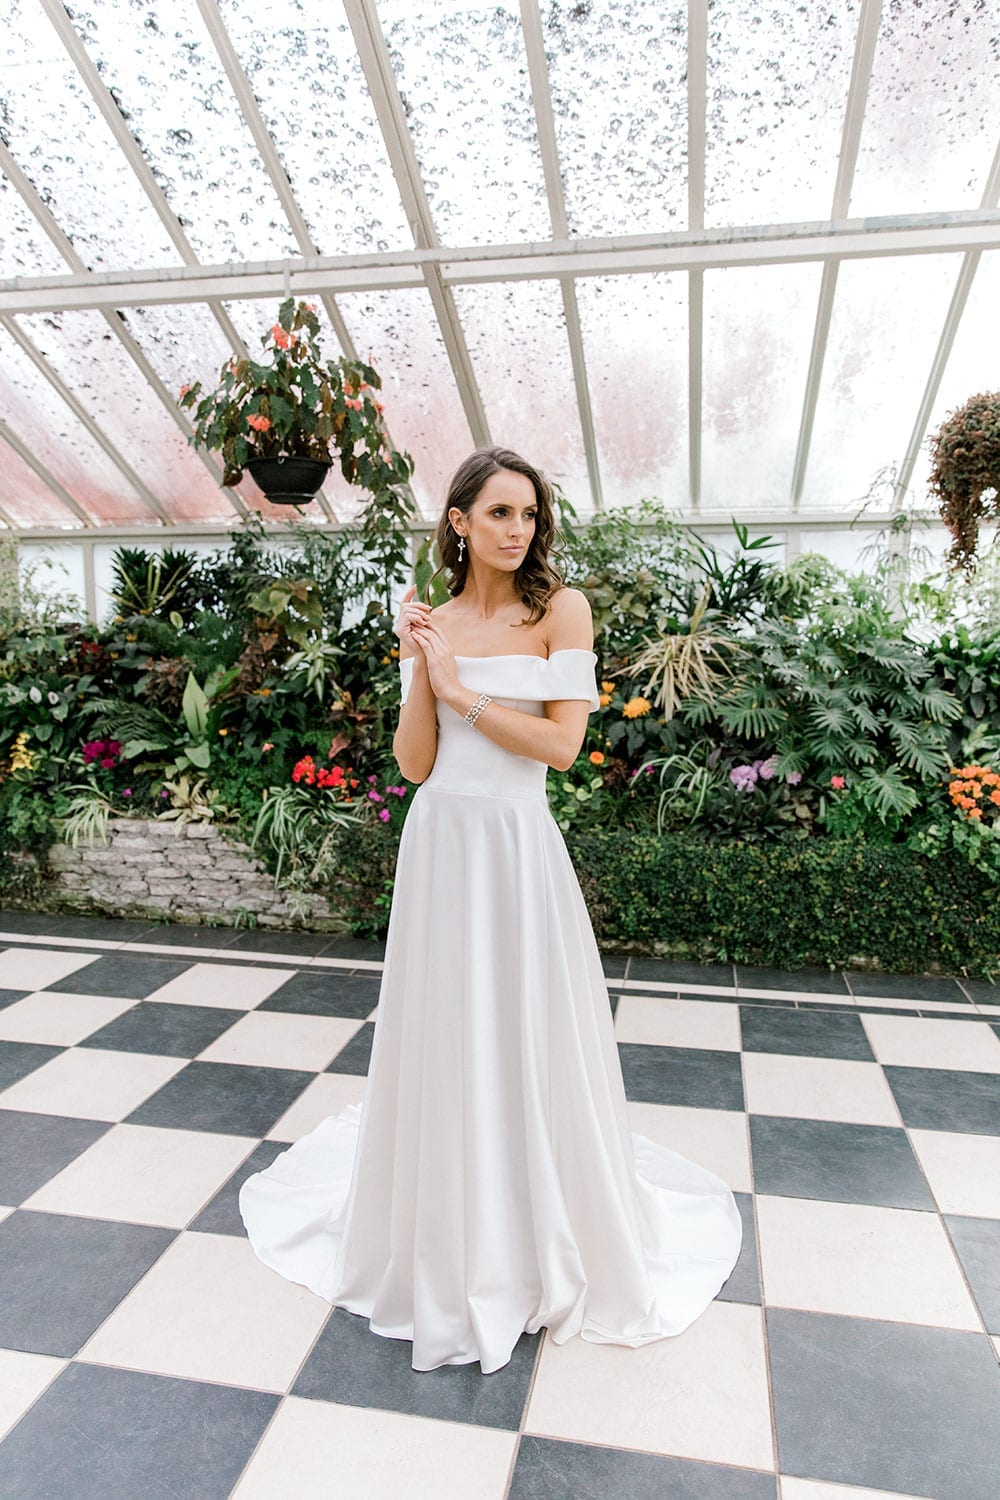 Model wearing Vinka Design Deor Wedding Dress, an Off-Shoulder Satin Wedding Gown inside botanical garden greenhouse